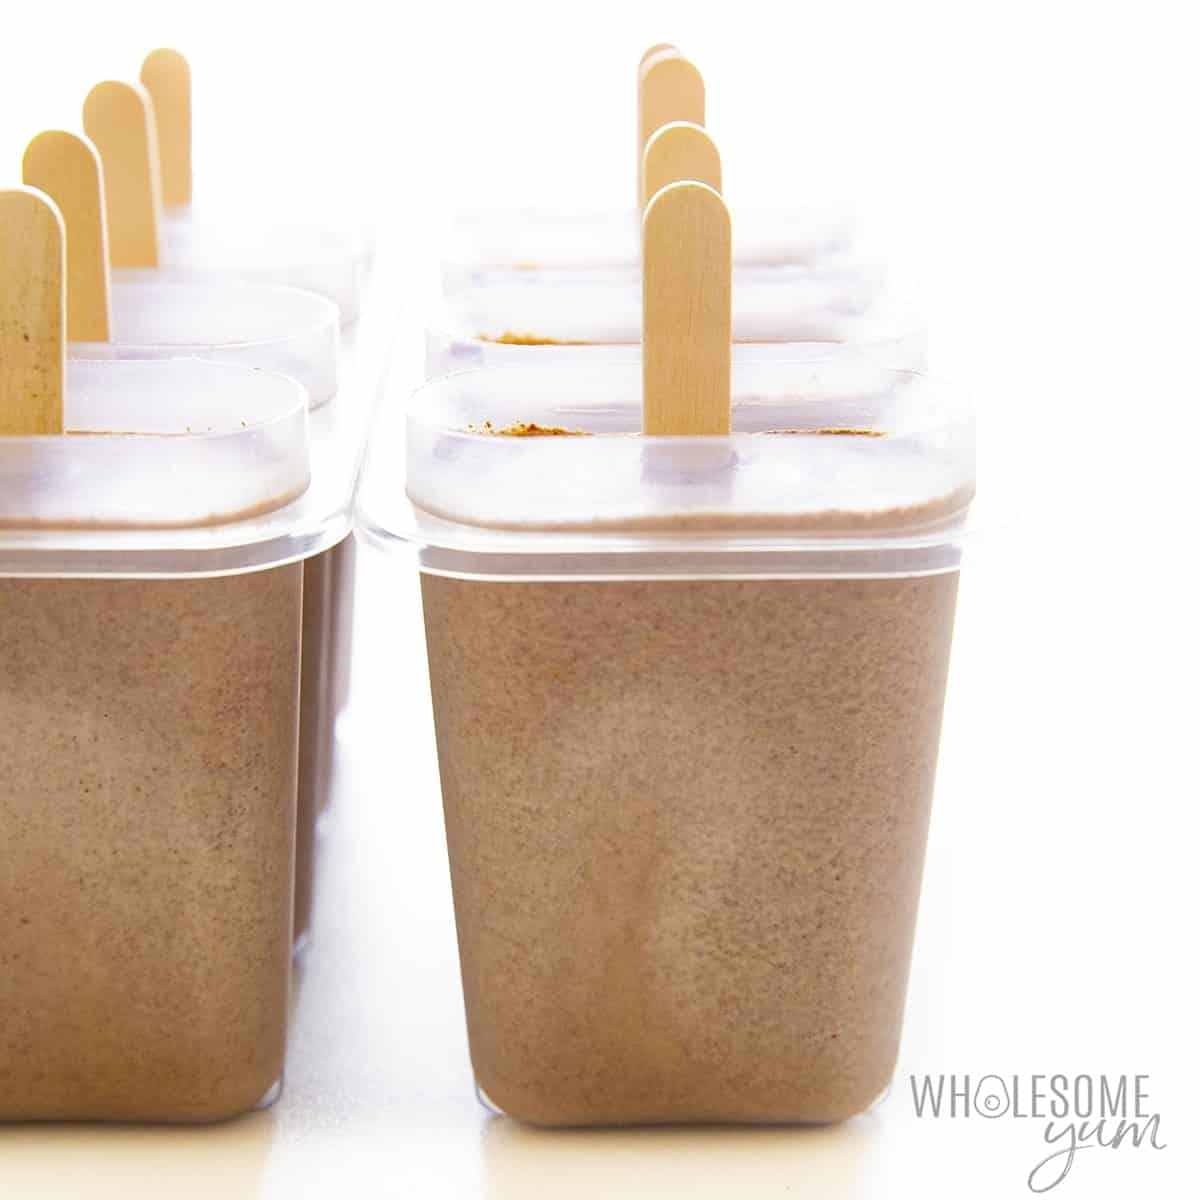 Healthy fudge pops in popsicle mold with sticks inserted